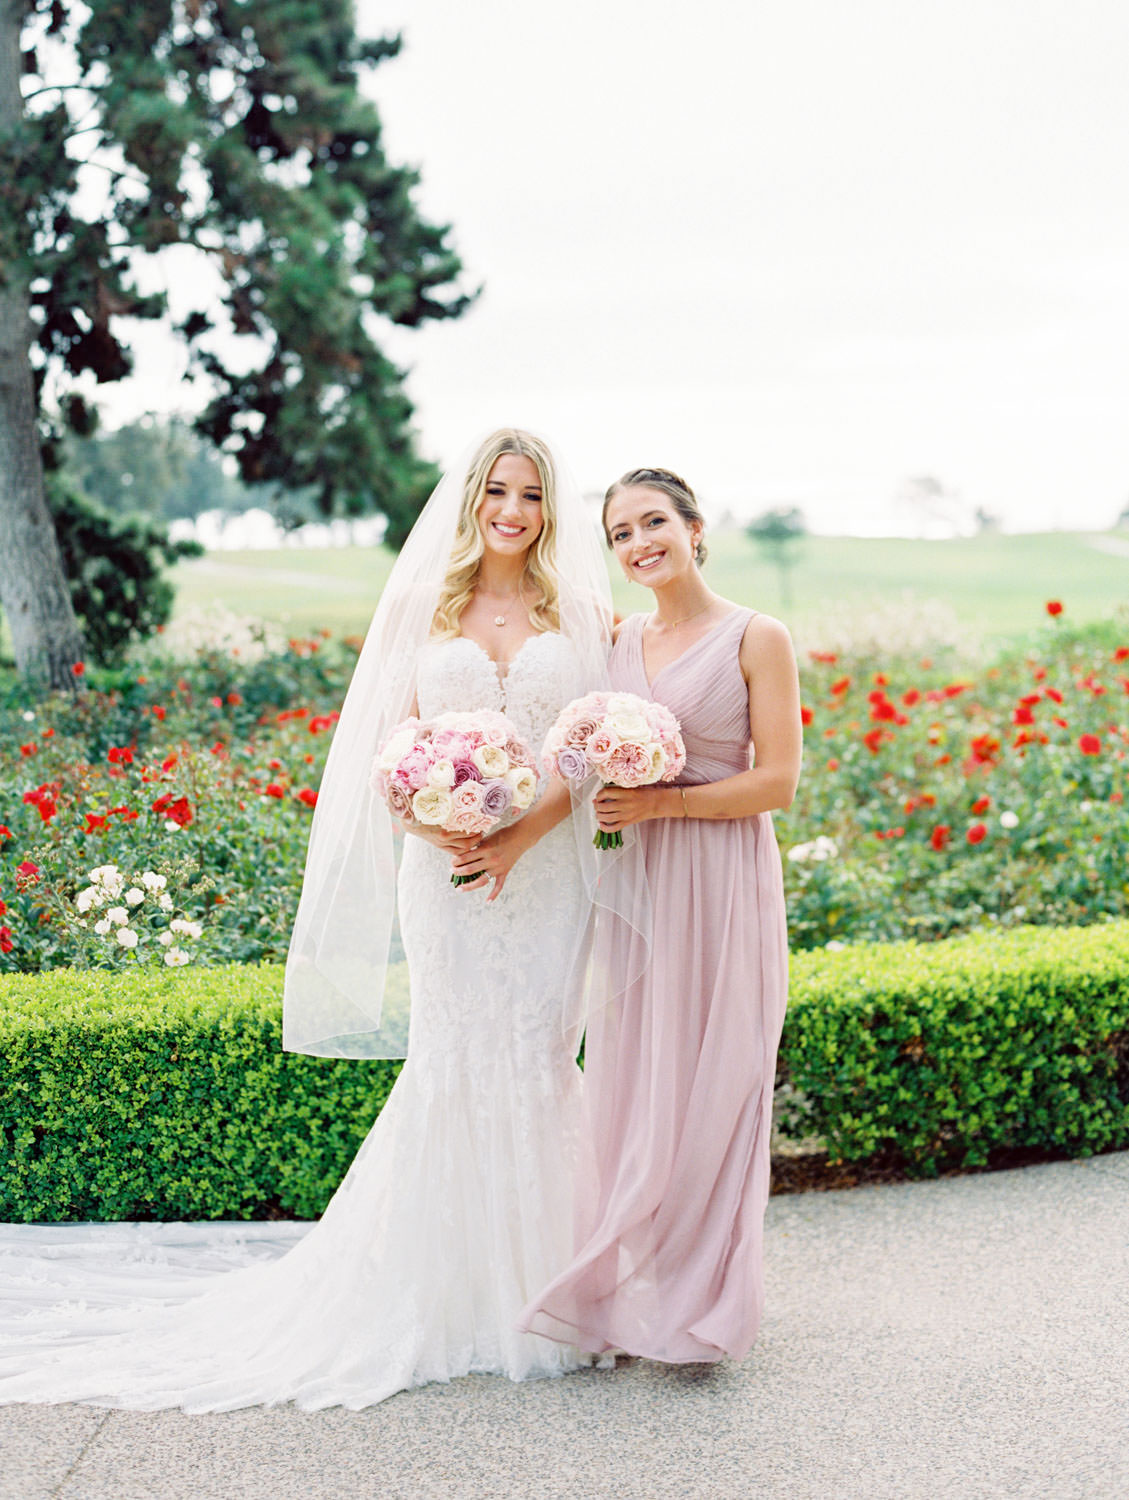 Bride in Pronovias off shoulder lace gown and long train and veil holding a bouquet with blush, lavender, and ivory roses, maid of honor in lavender dresses, Lodge at Torrey Pines wedding, film photography by Cavin Elizabeth Photography